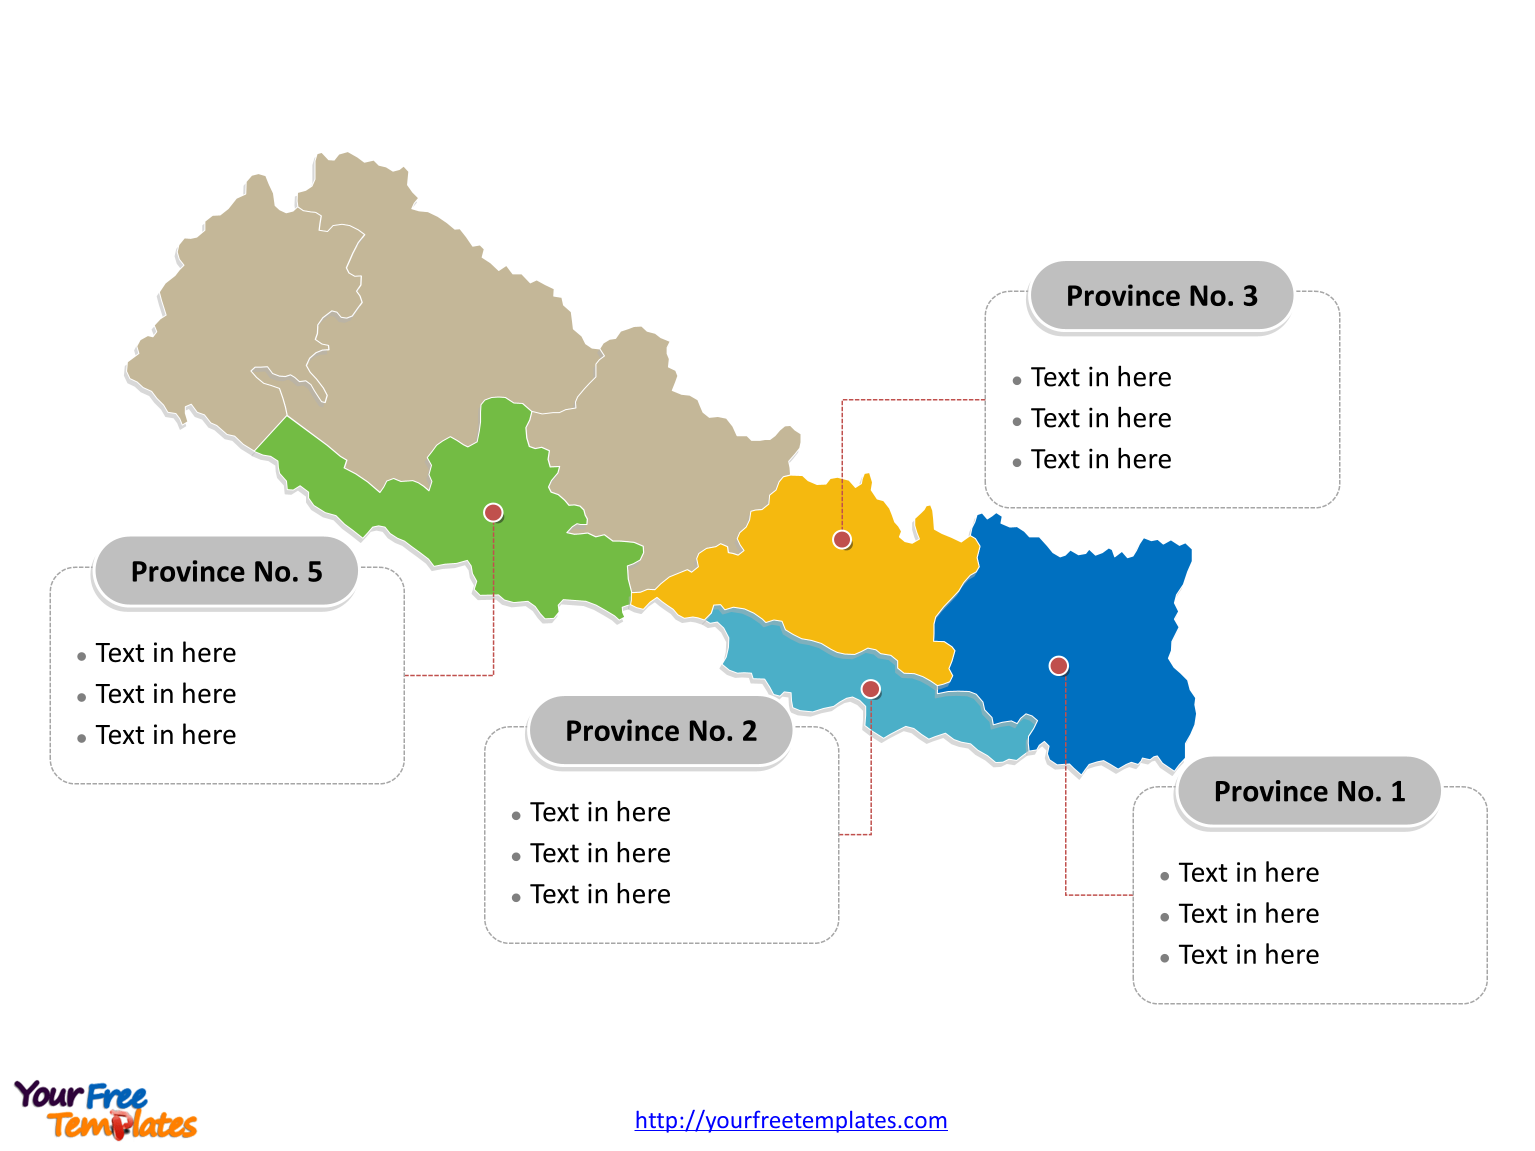 nepal political map labeled with major provinces